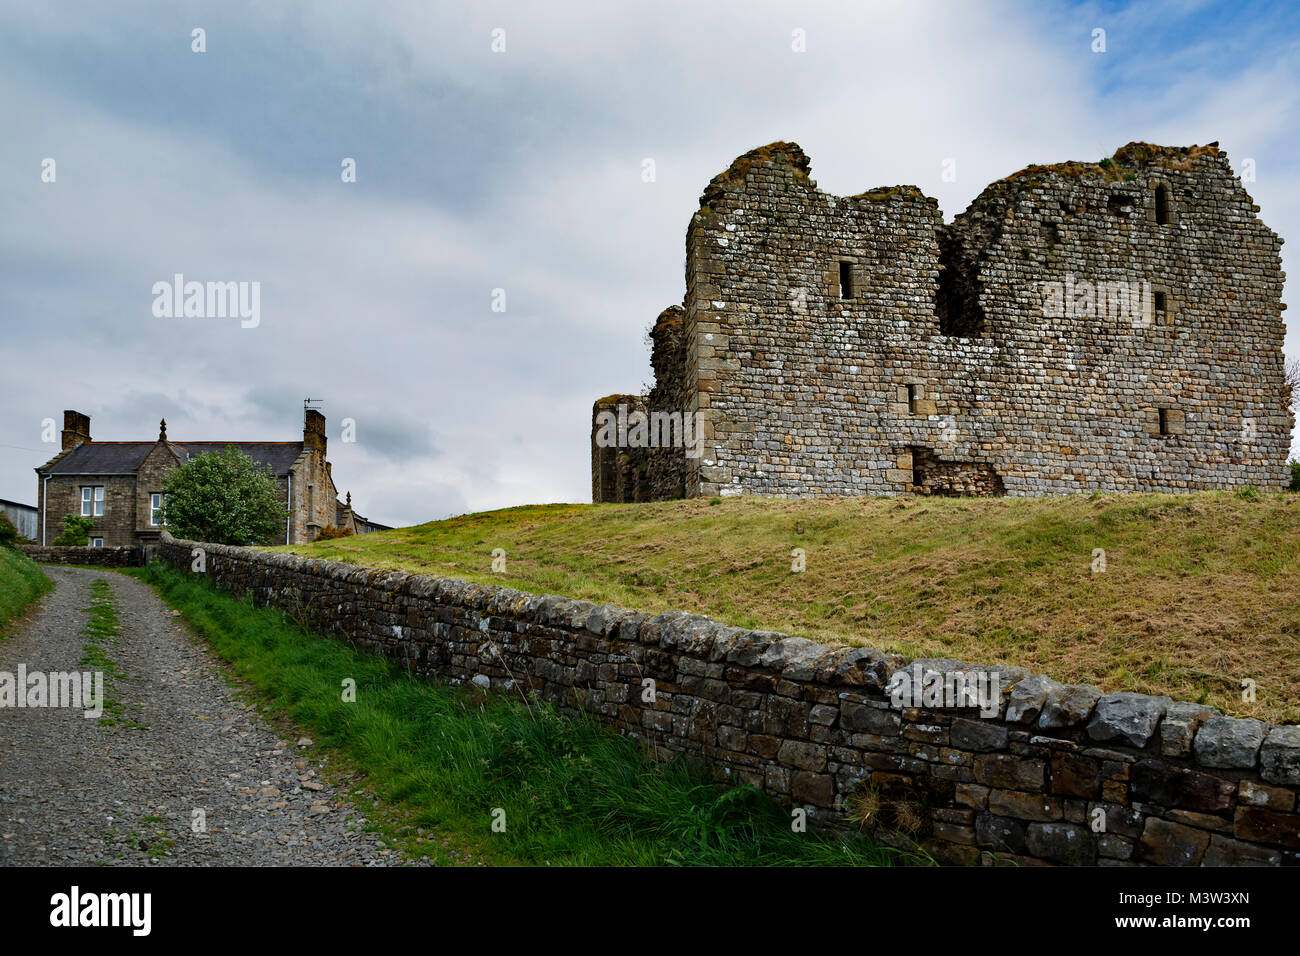 Ruins of Thirlwall Castle and stone cottage, near Greenhead, Northumberland, England, United Kingdom - Stock Image